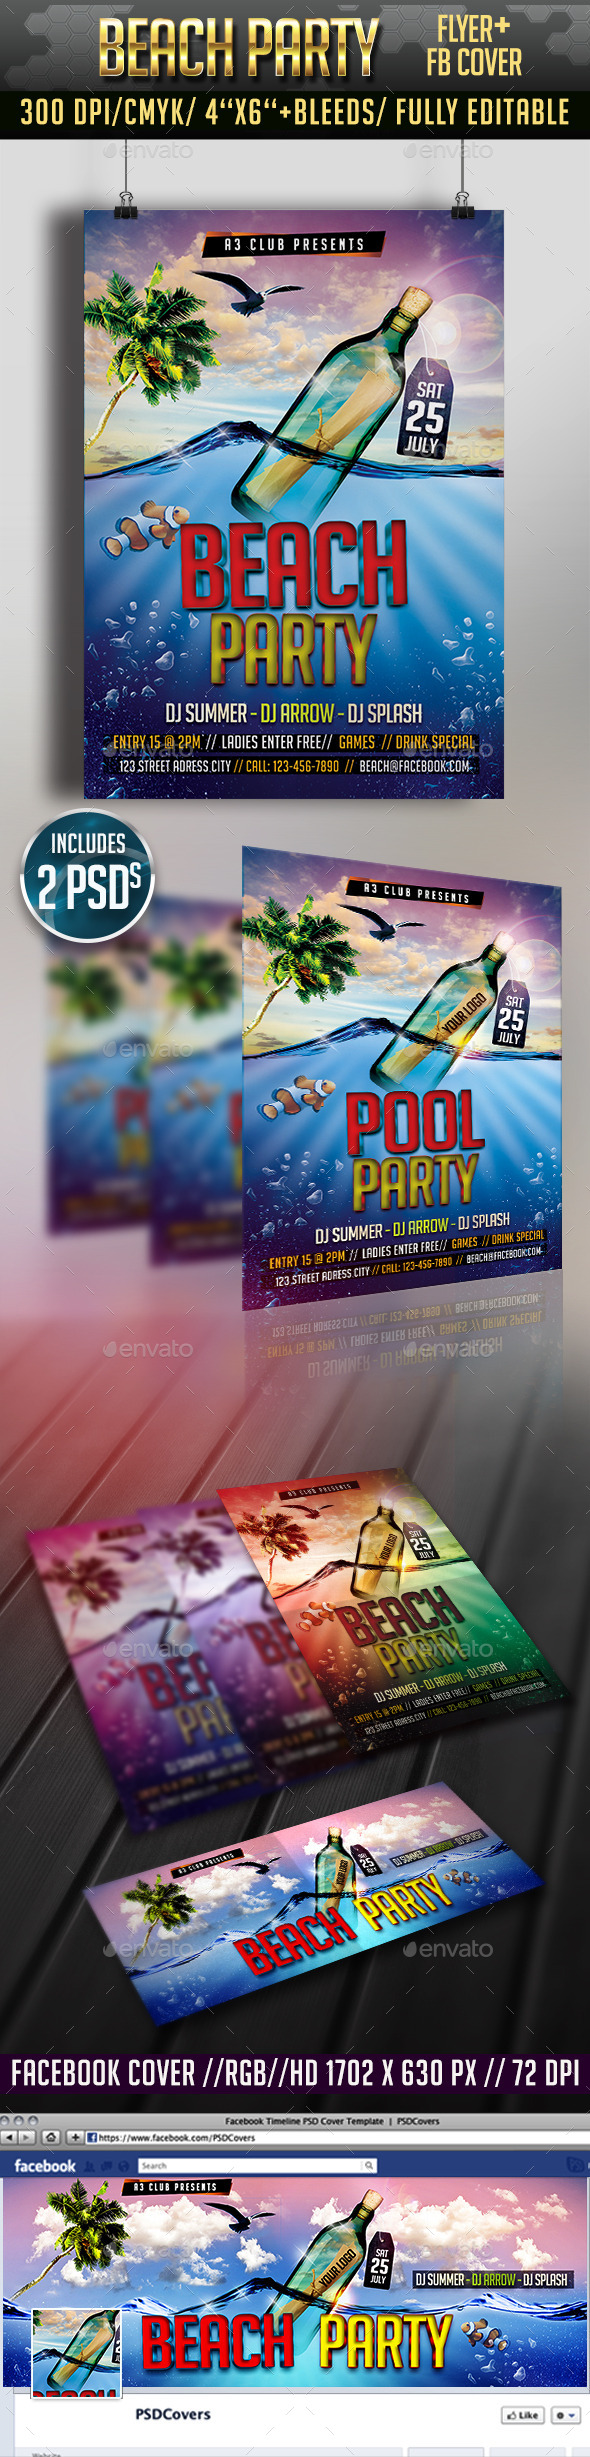 Beach Party Flyer + Facebook Cover - Clubs & Parties Events